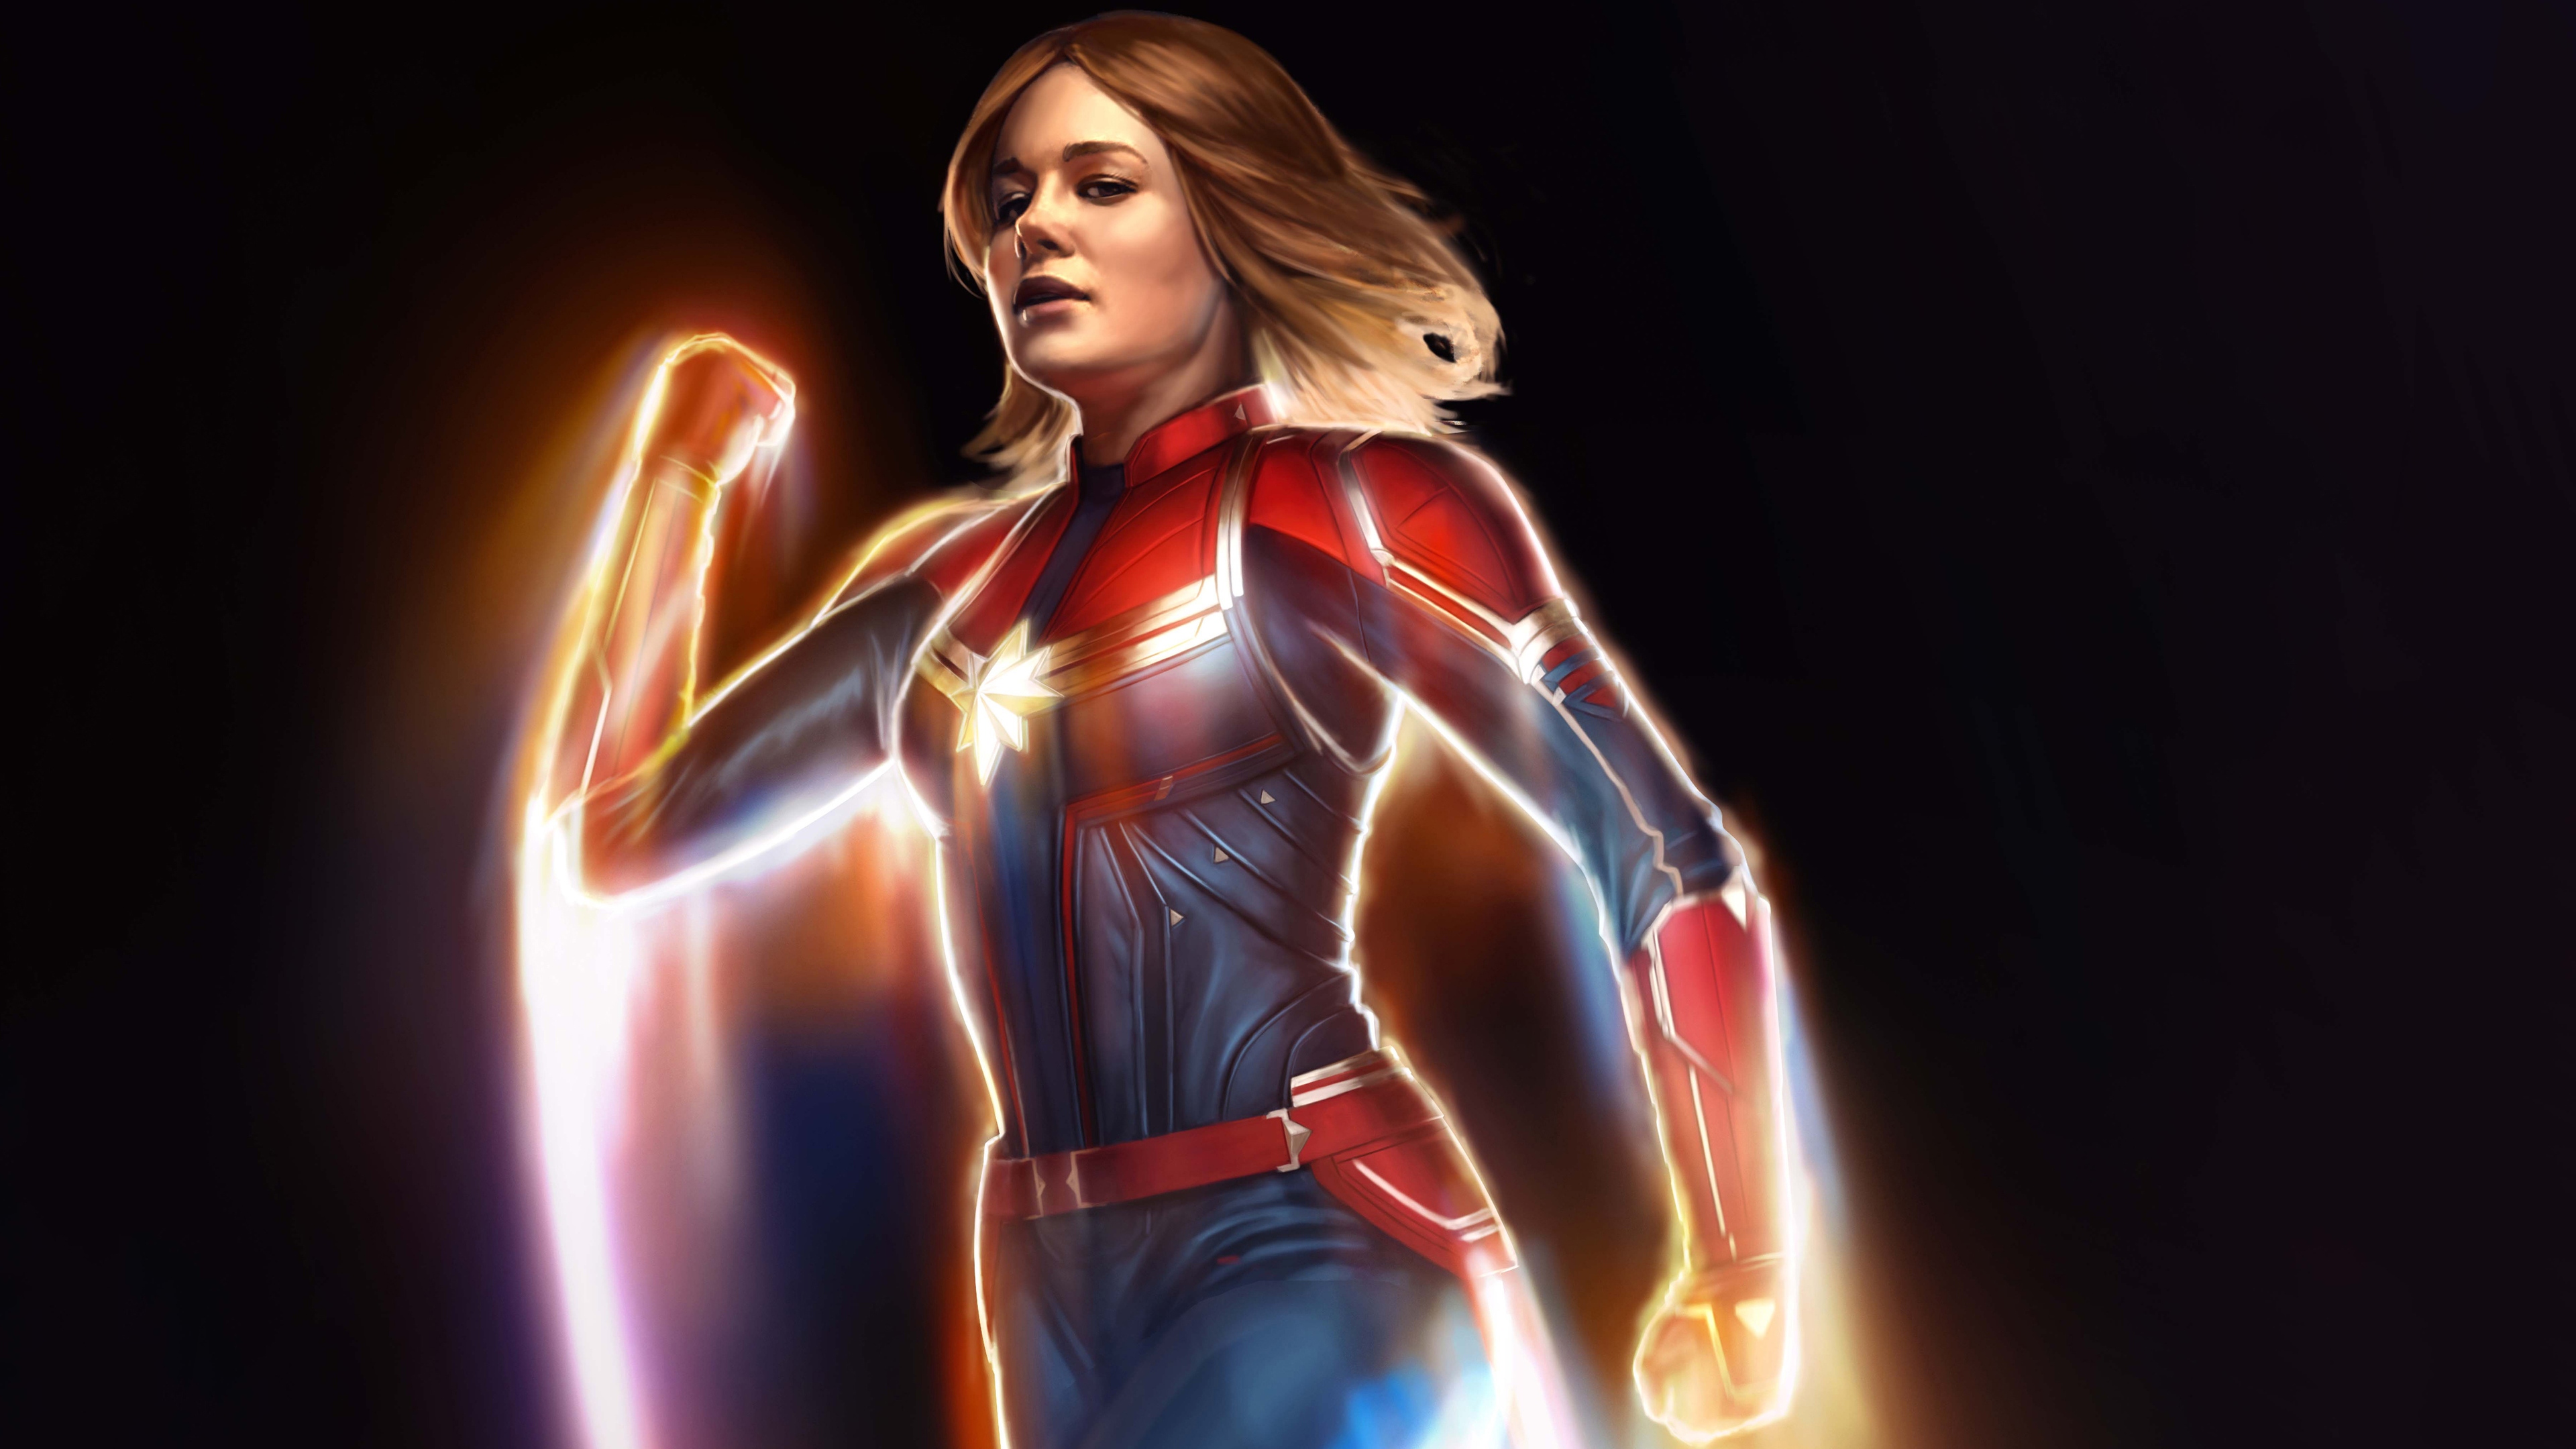 Wallpaper 4k Captain Marvel 4k New Artwork 4k Wallpapers 5k